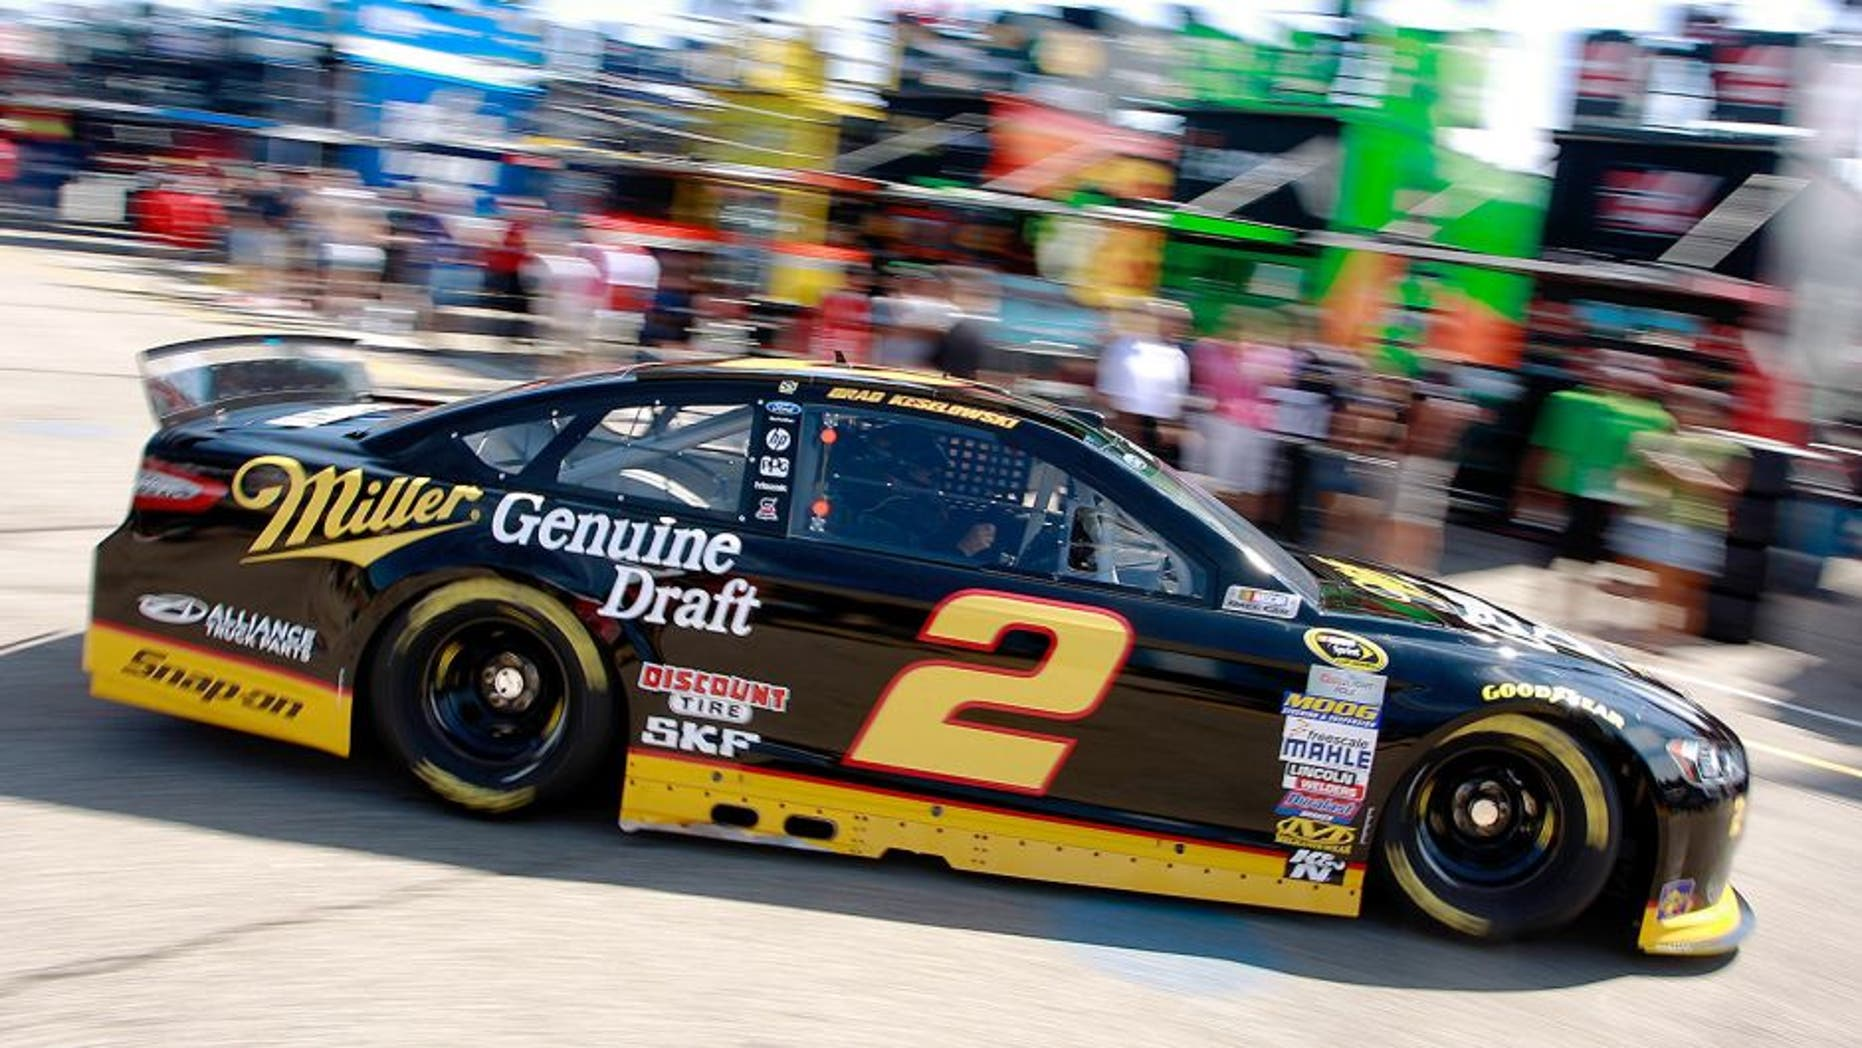 BROOKLYN, MI - AUGUST 15: Brad Keselowski, driver of the #2 Miller Lite Ford, drives through the garage area during practice for the NASCAR Sprint Cup Series Pure Michigan 400 at Michigan International Speedway on August 15, 2015 in Brooklyn, Michigan. (Photo by Brian Lawdermilk/NASCAR via Getty Images)